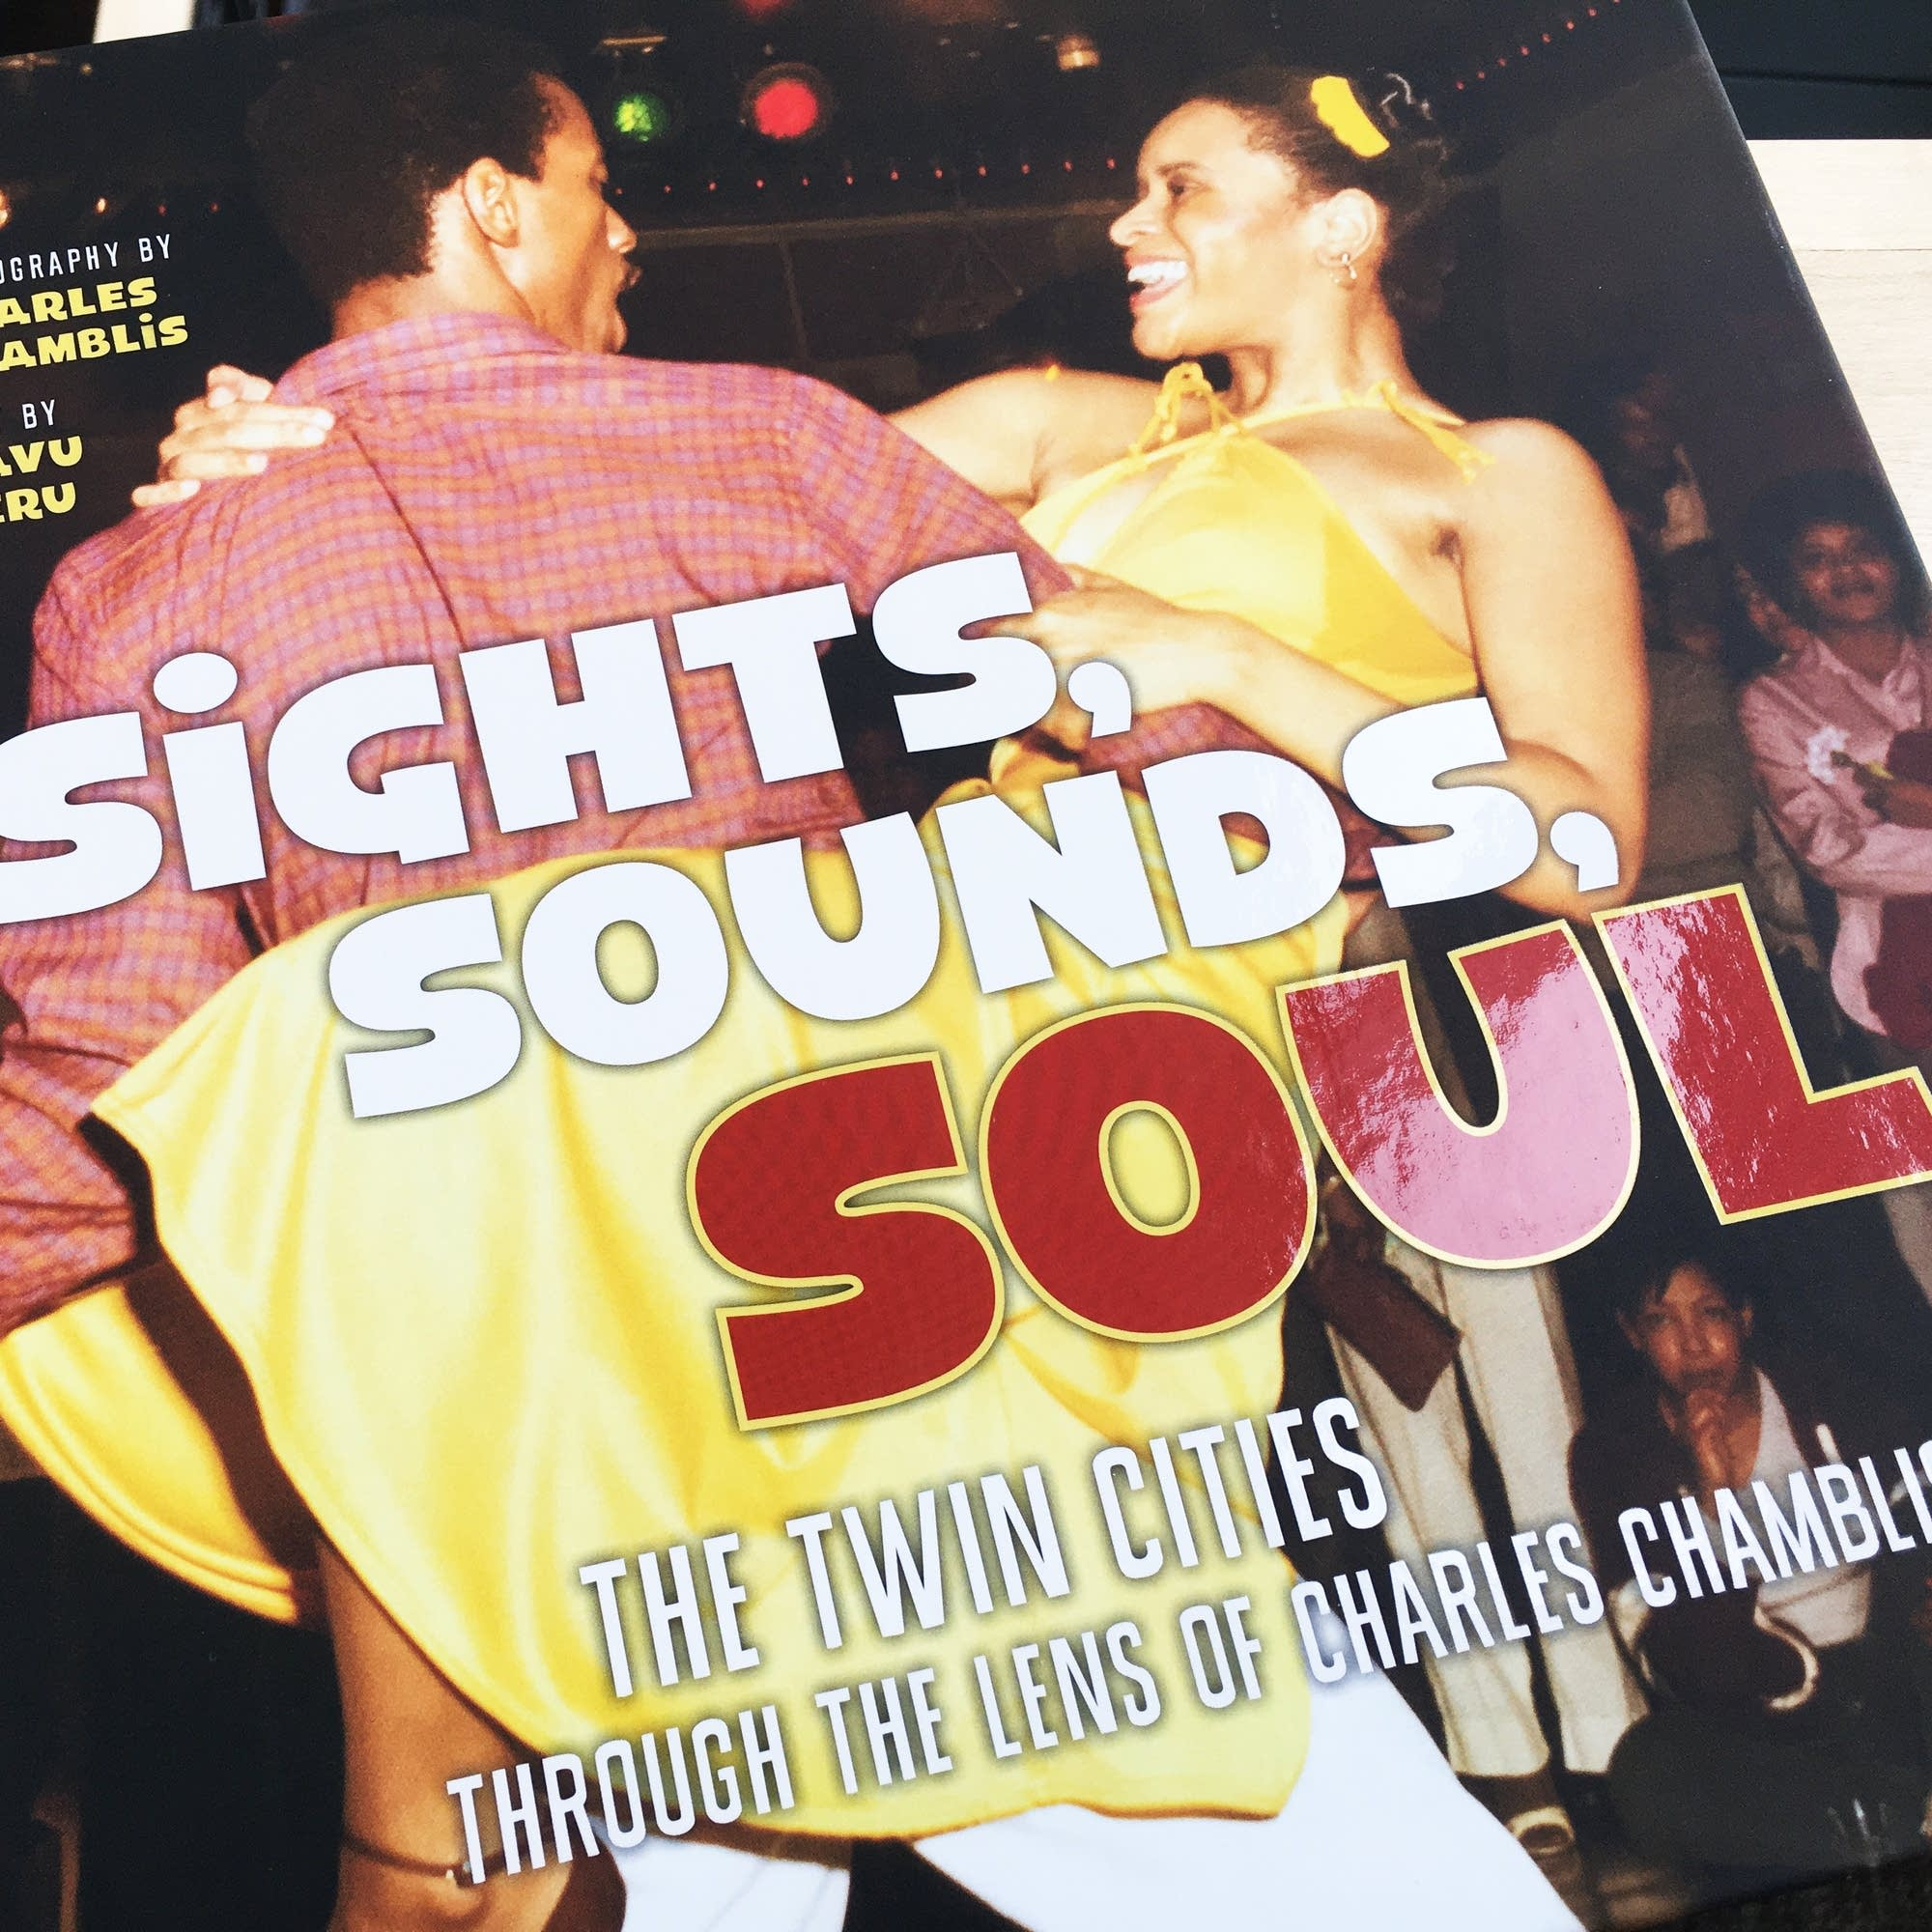 'Sights, Sounds, Soul' book cover.